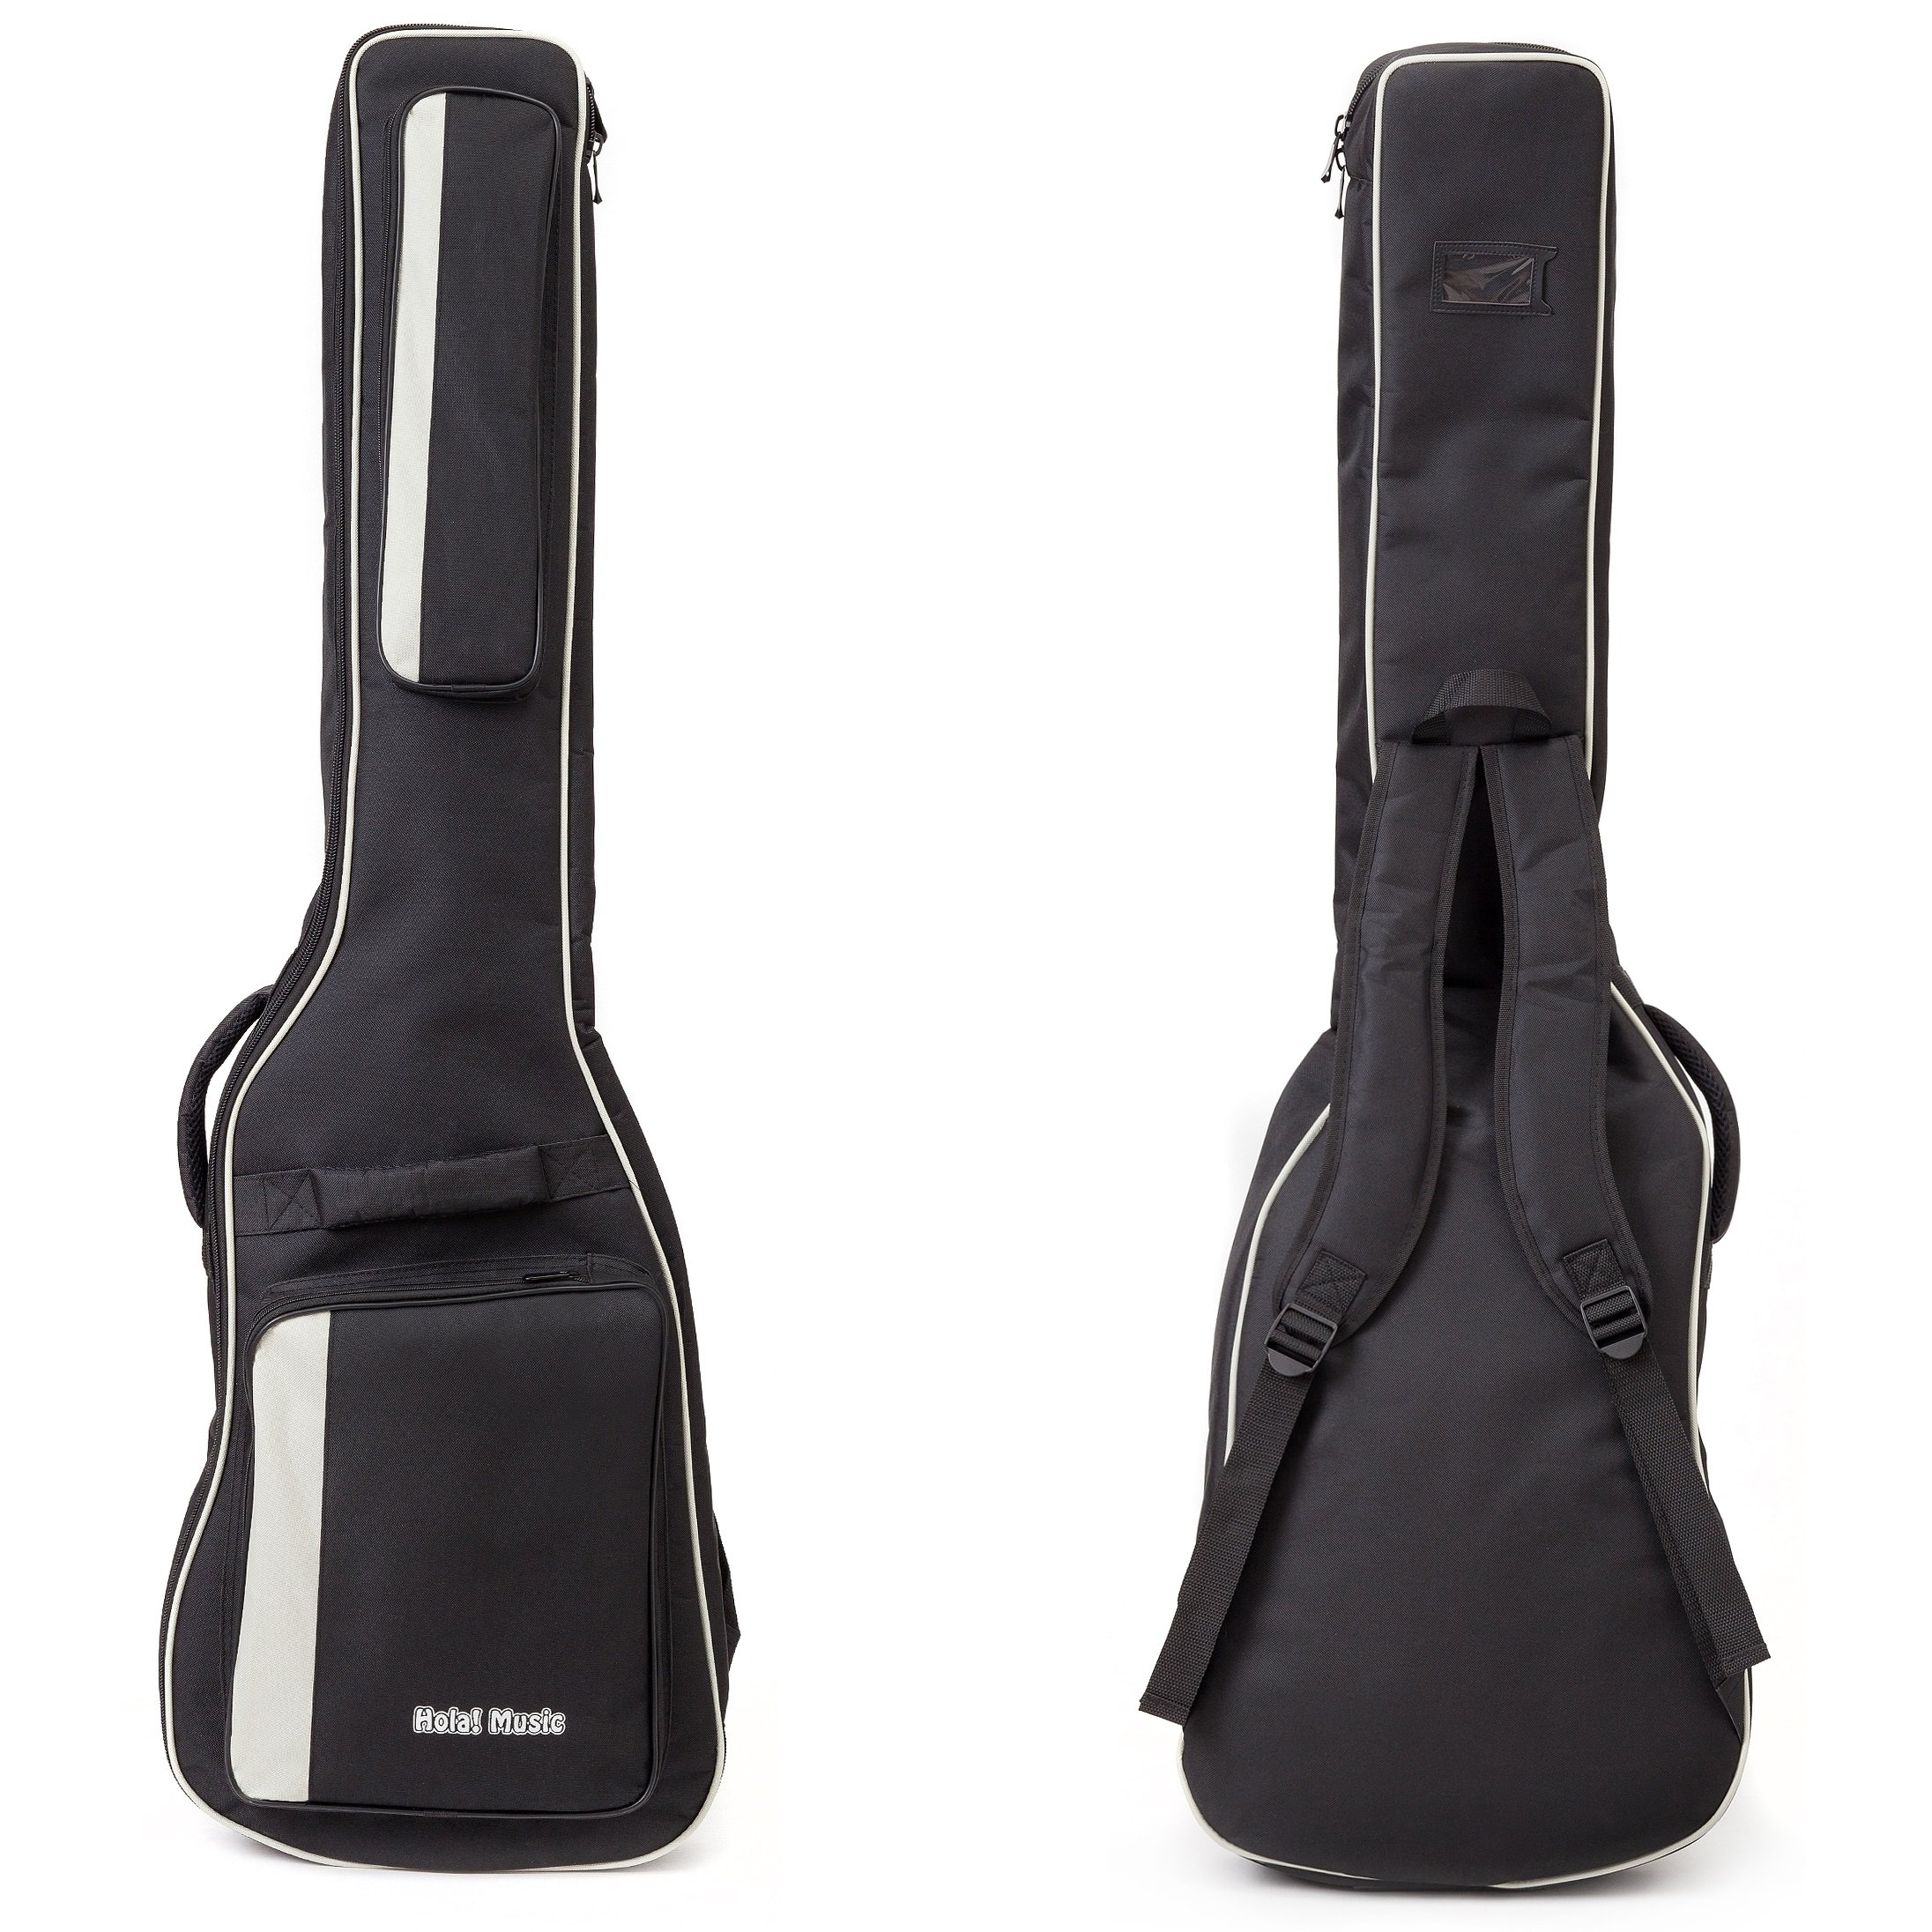 f0c58a569d Amazon.com: Bass Guitar Gig Bag by Hola! Music, Deluxe Series with 15mm  Padding, Black: Musical Instruments